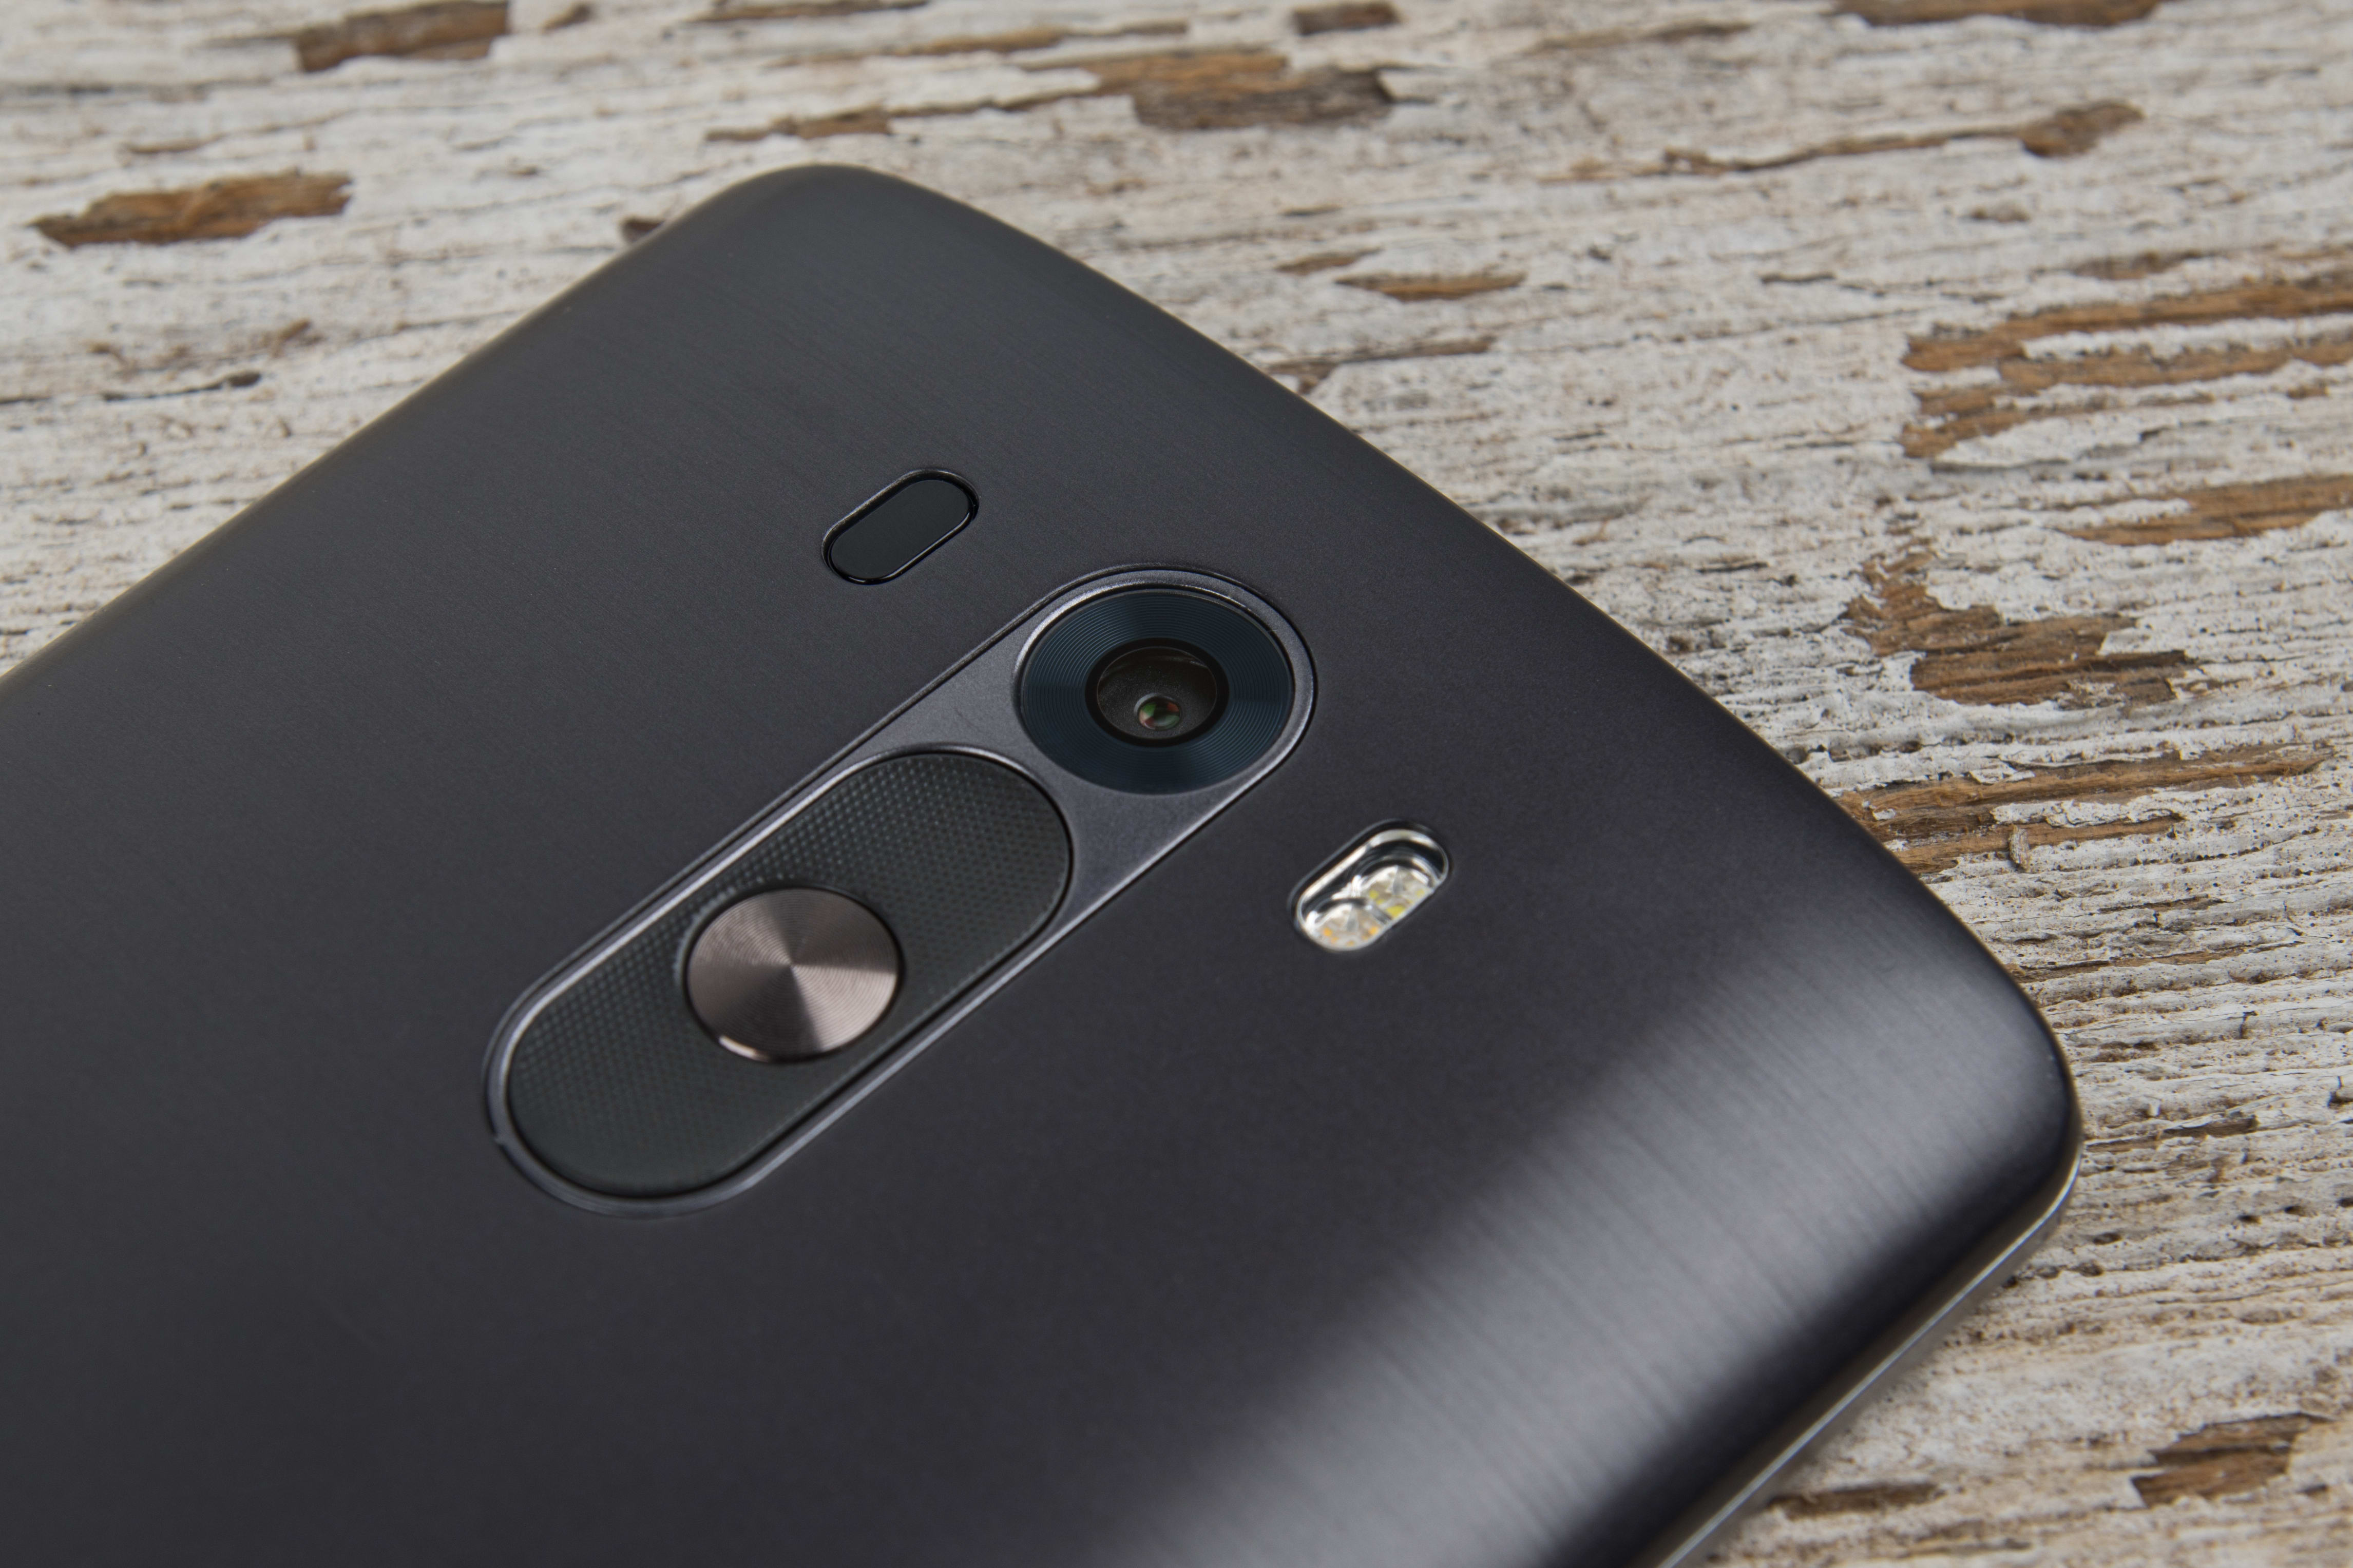 A close-up photo of the LG G3's camera.